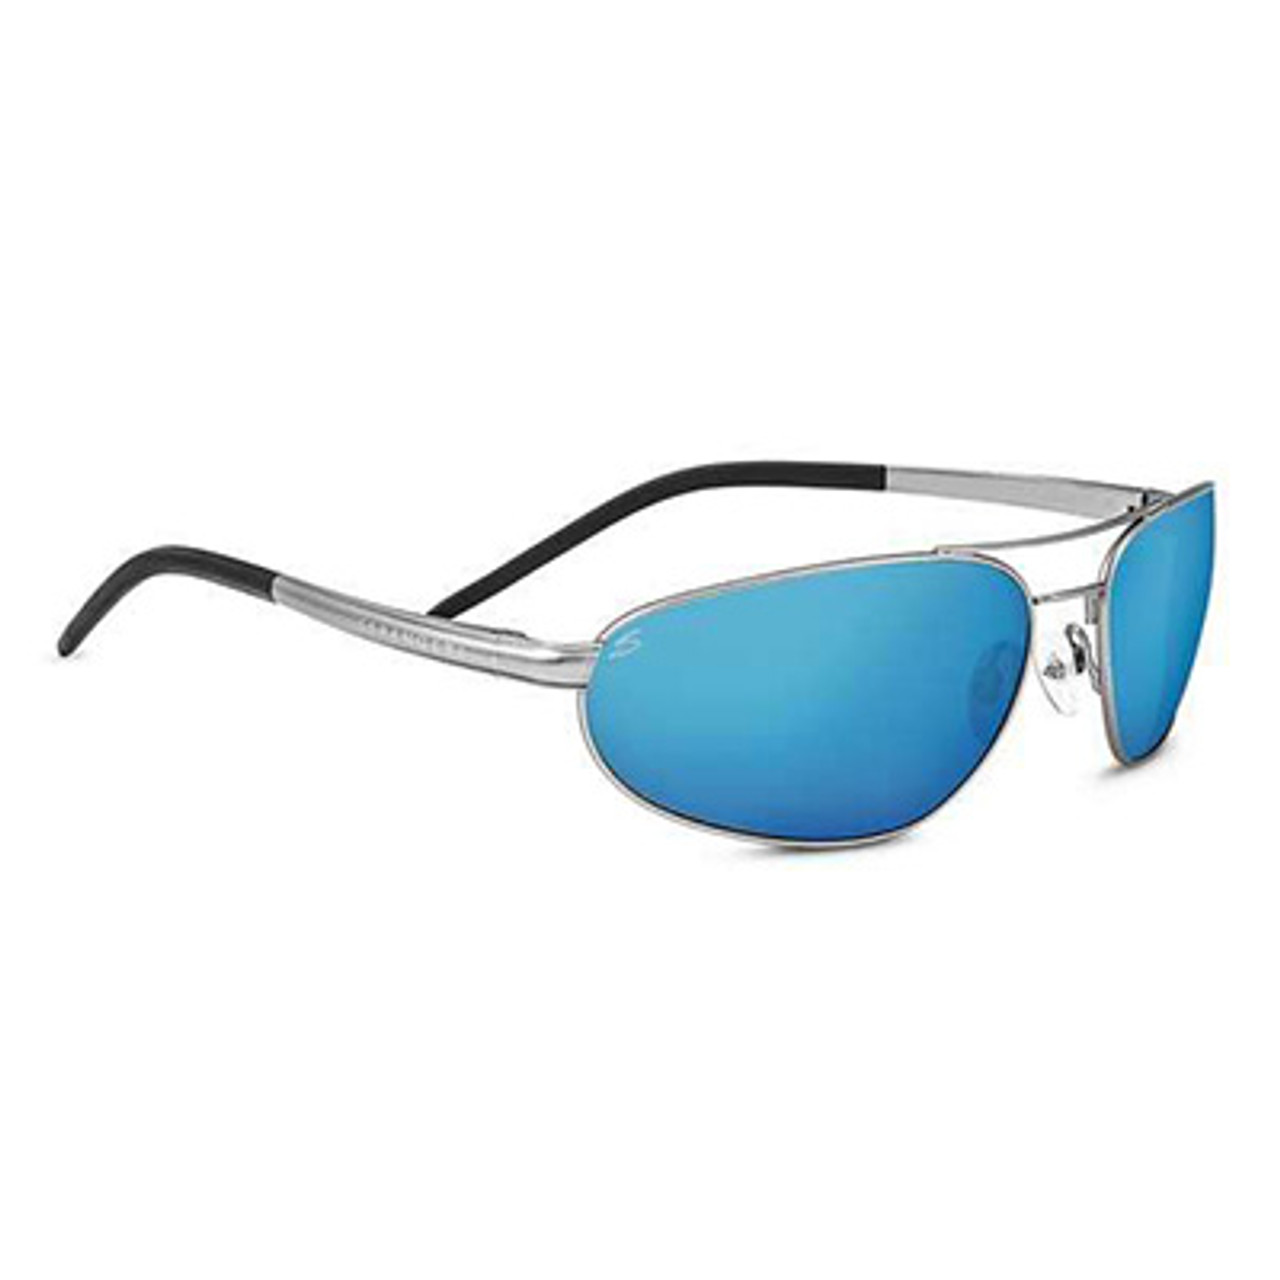 Serengeti Como Titanium Blue 555 Polarized